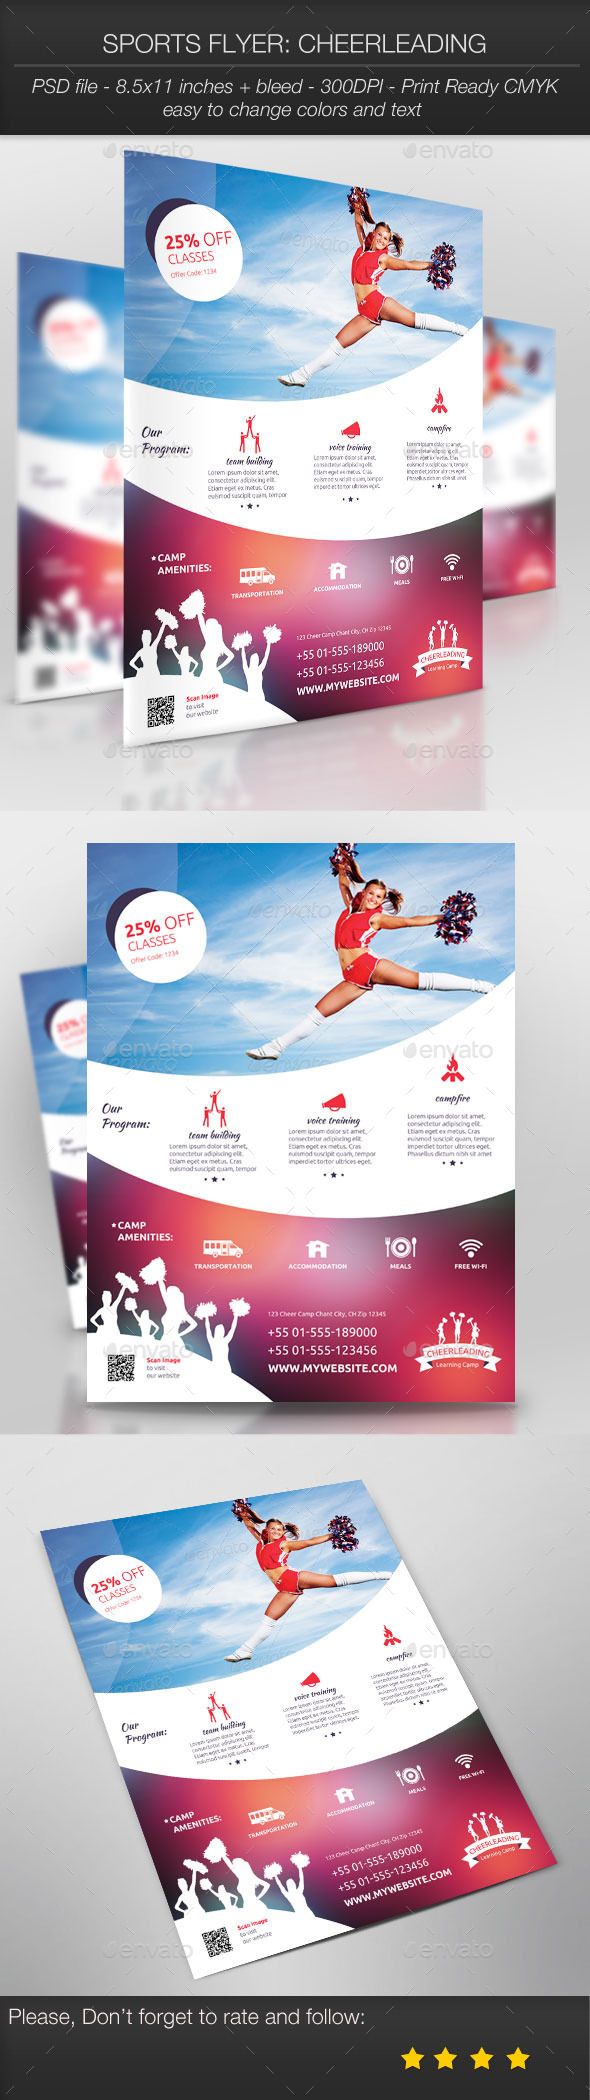 Sports Flyer: Cheerleading - Sports Events